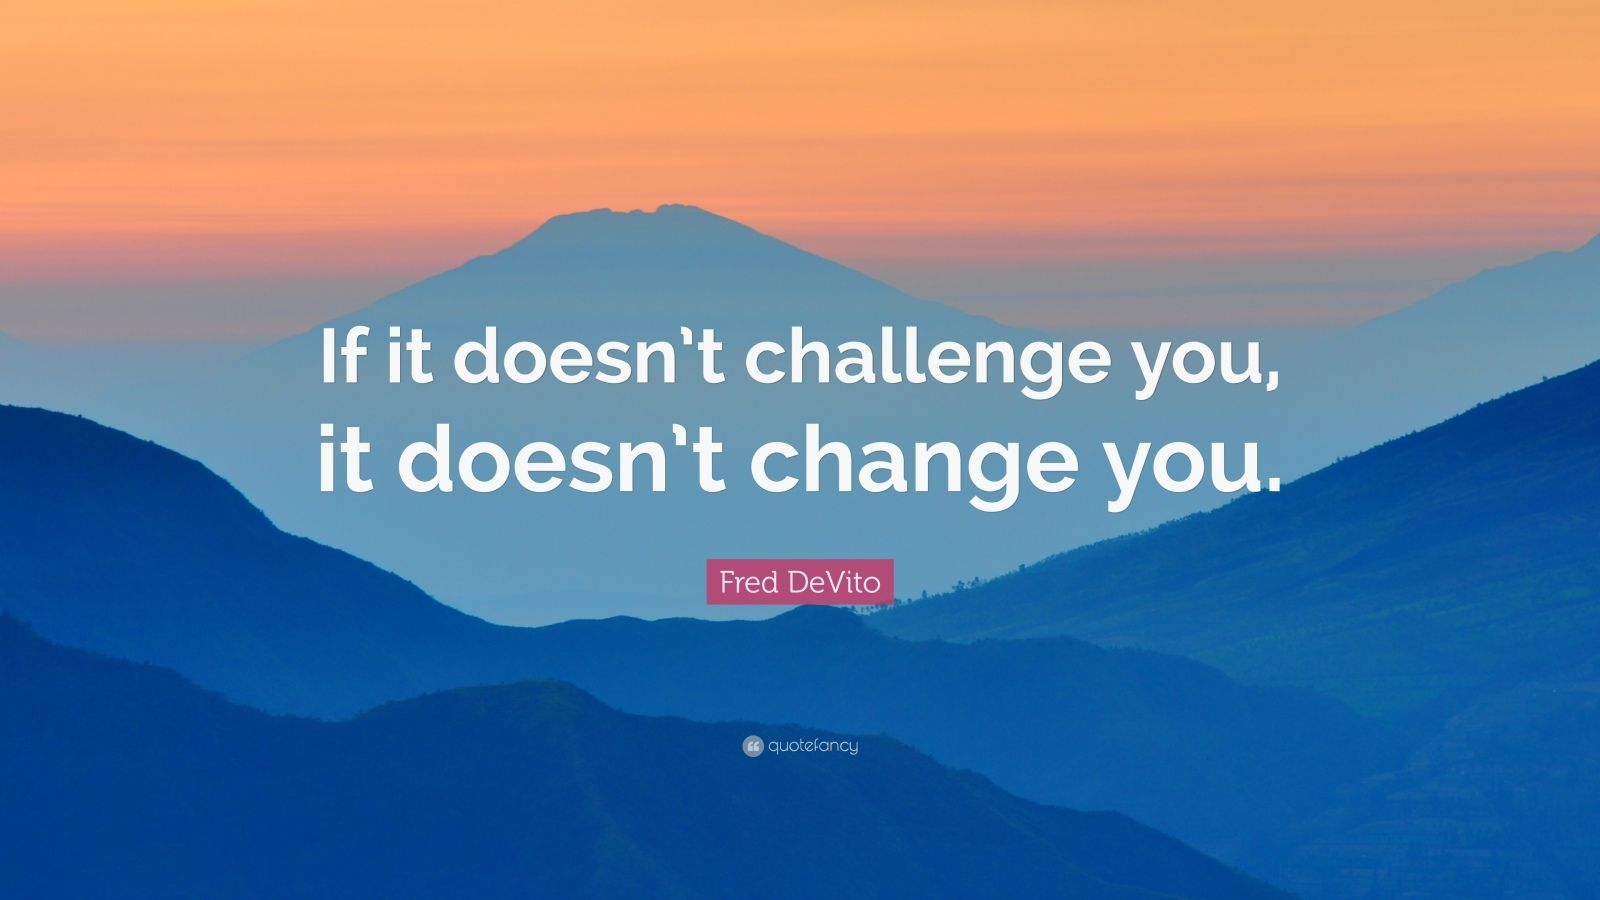 Casey Neistat Quotes Wallpaper Fred Devito Quote If It Doesn T Challenge You It Doesn